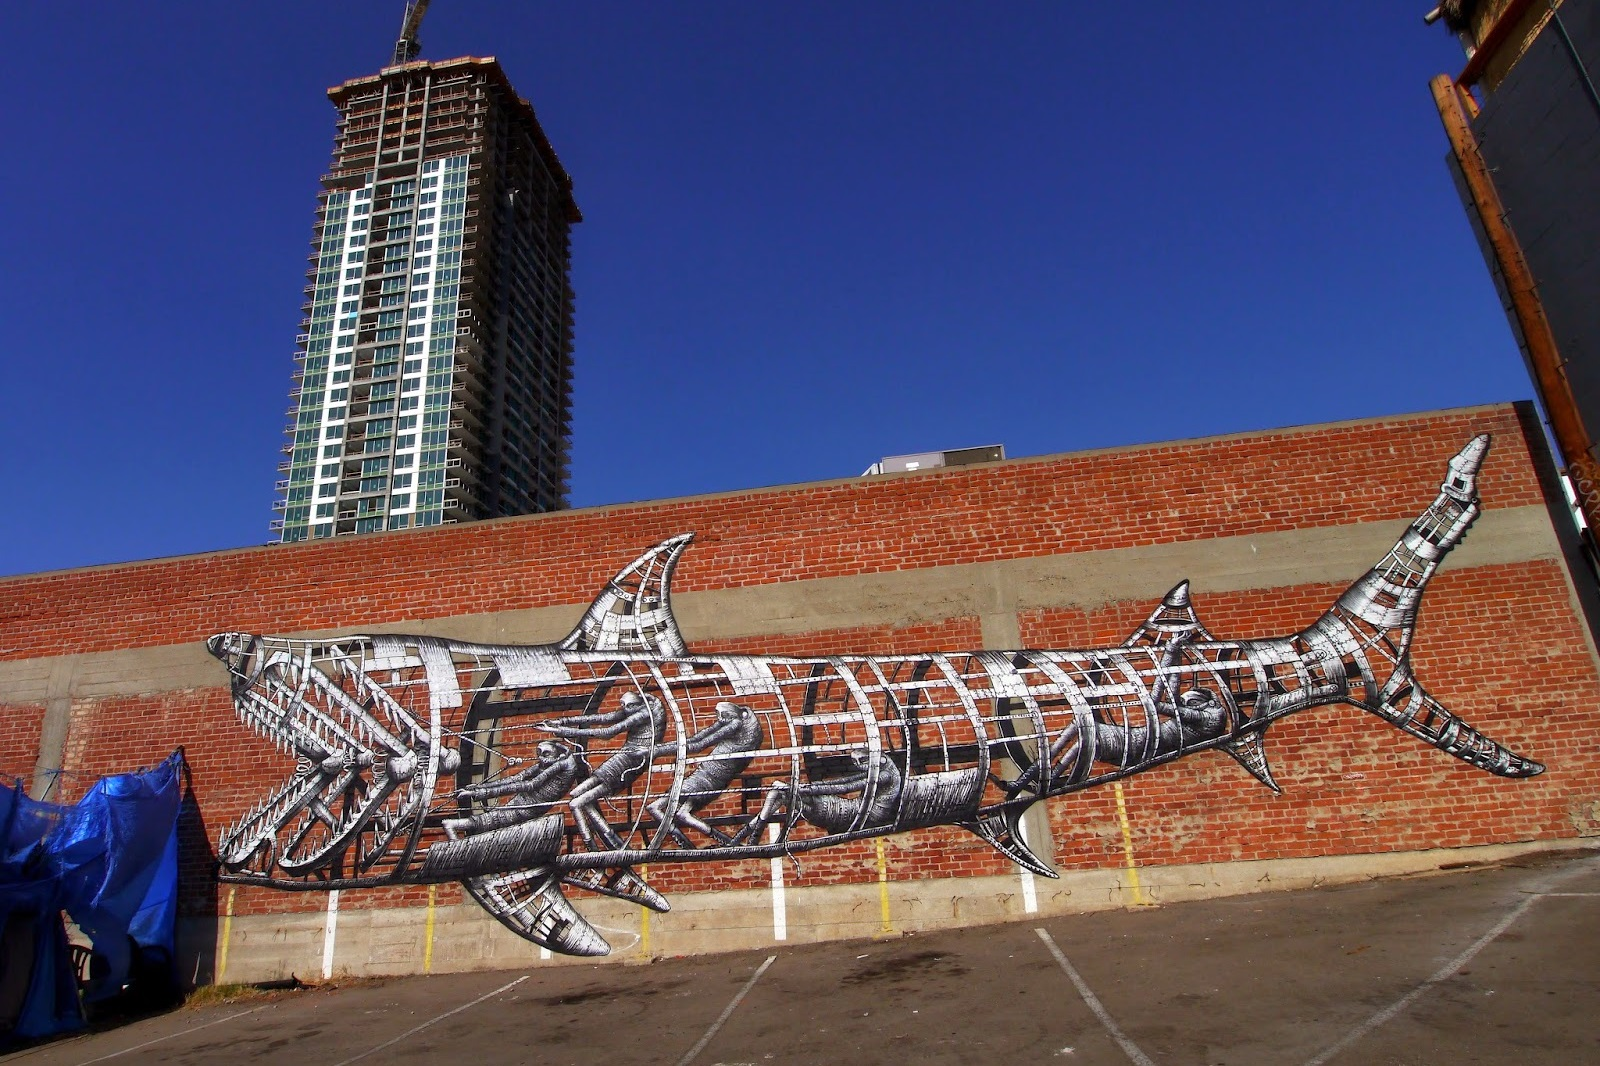 phlegm-new-mural-in-san-diego-california-01